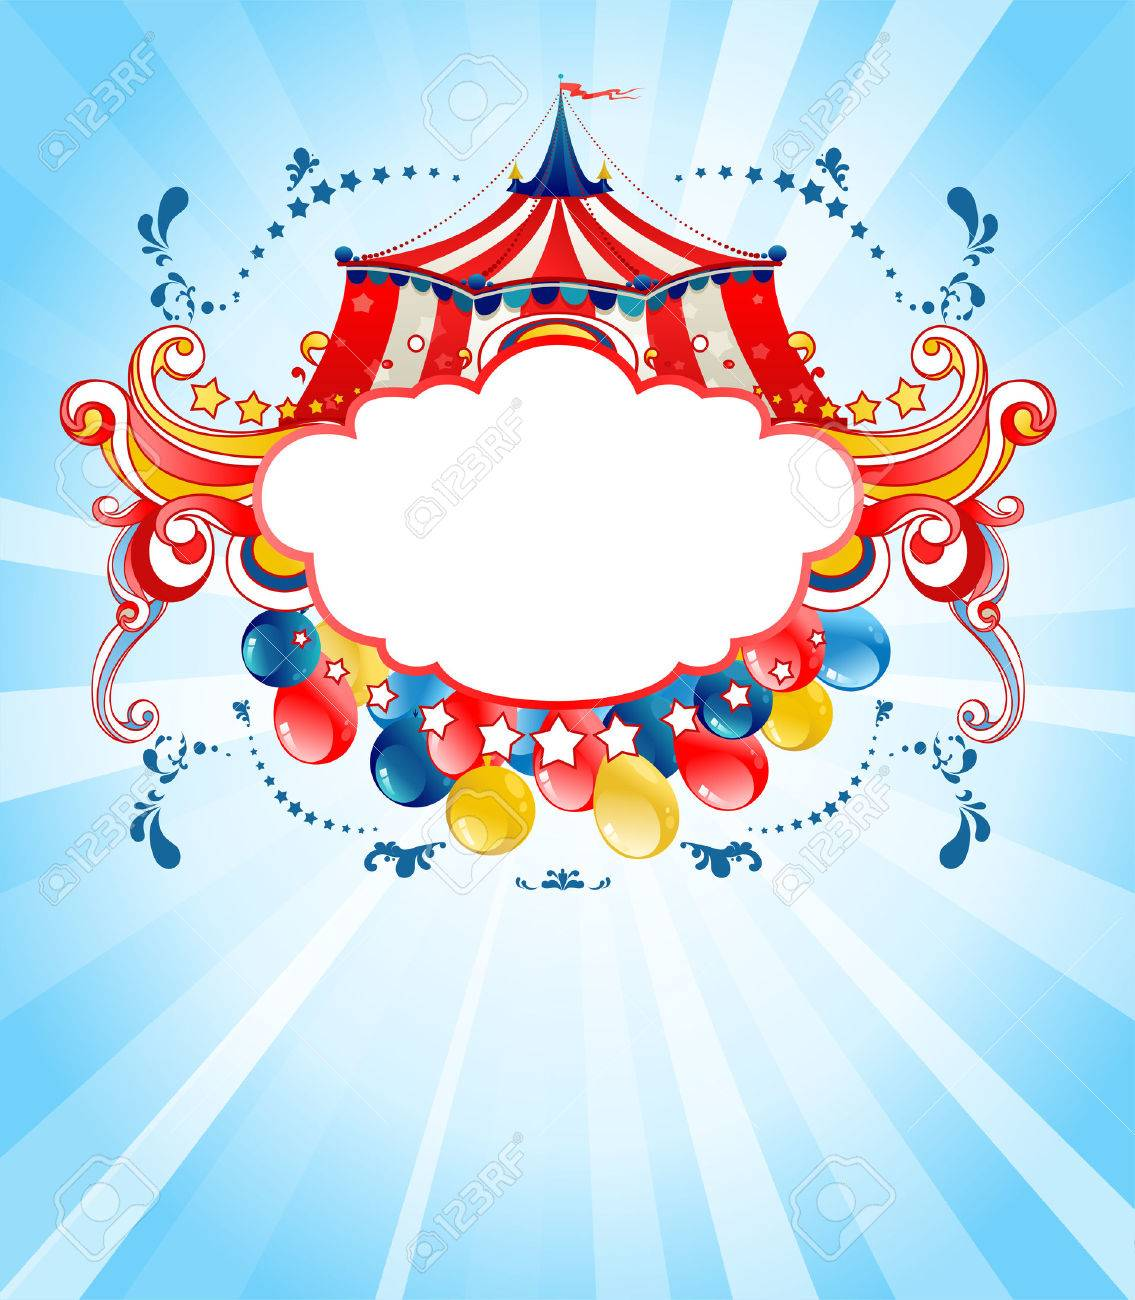 Bright circus background for design card, banner, leaflet and so on. - 46971516